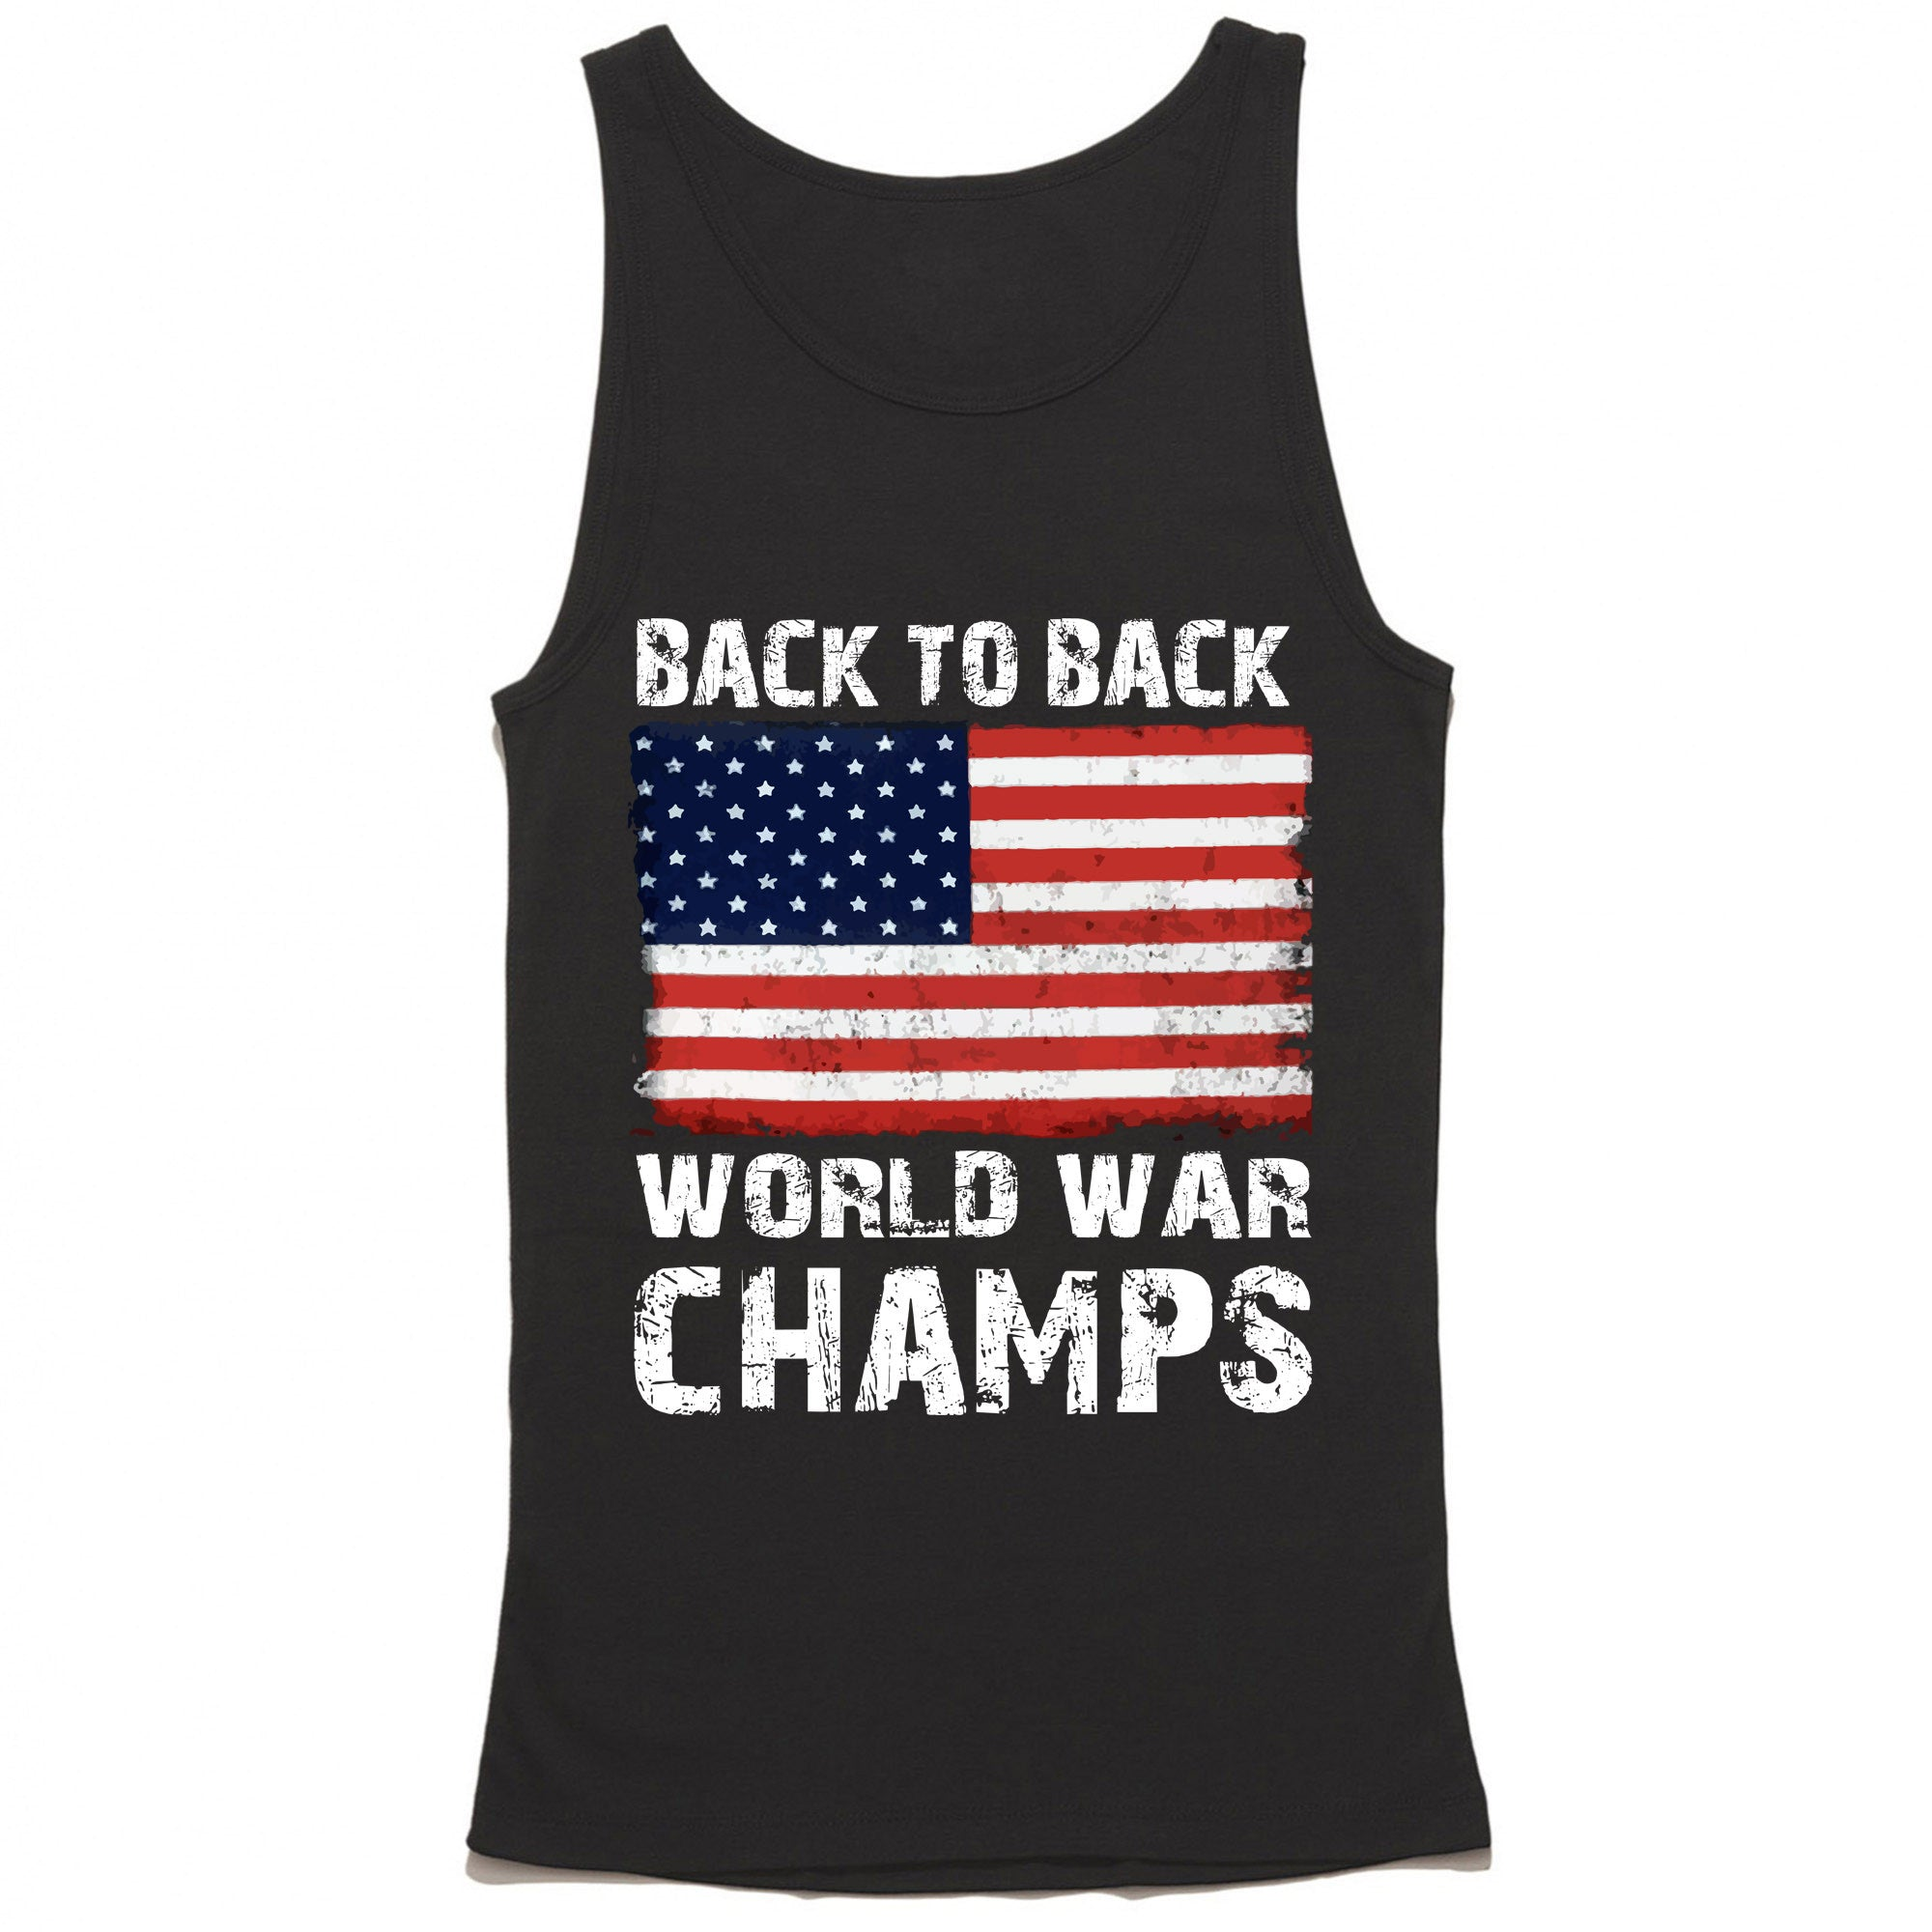 Back To Back World War Champs American Flag Tank Top